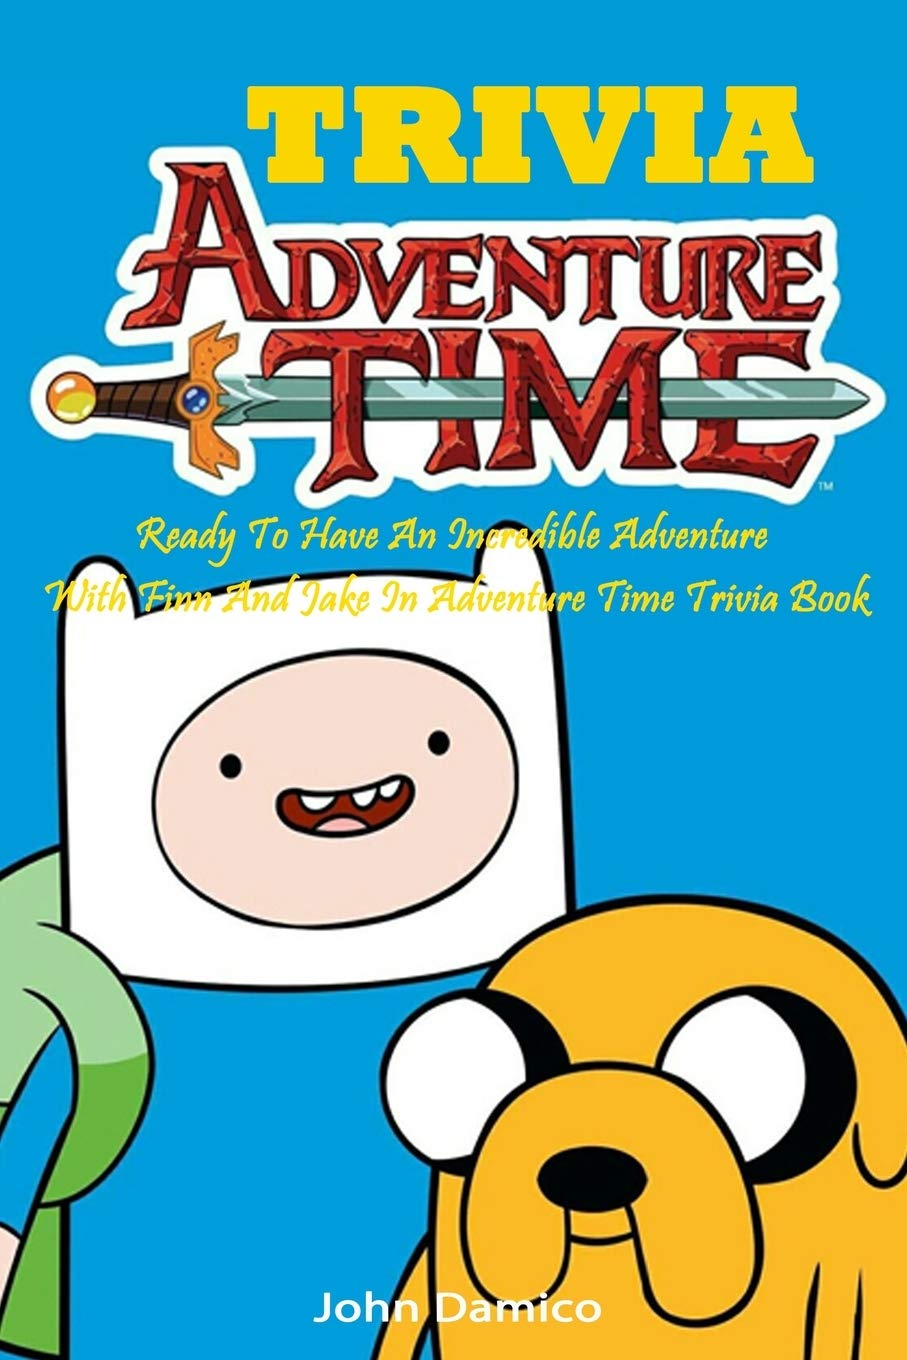 Adventure Time Trivia Ready To Have An Incredible Adventure With Finn And Jake In Adventure Time Trivia Book Damico John 9798669015190 Amazon Com Books